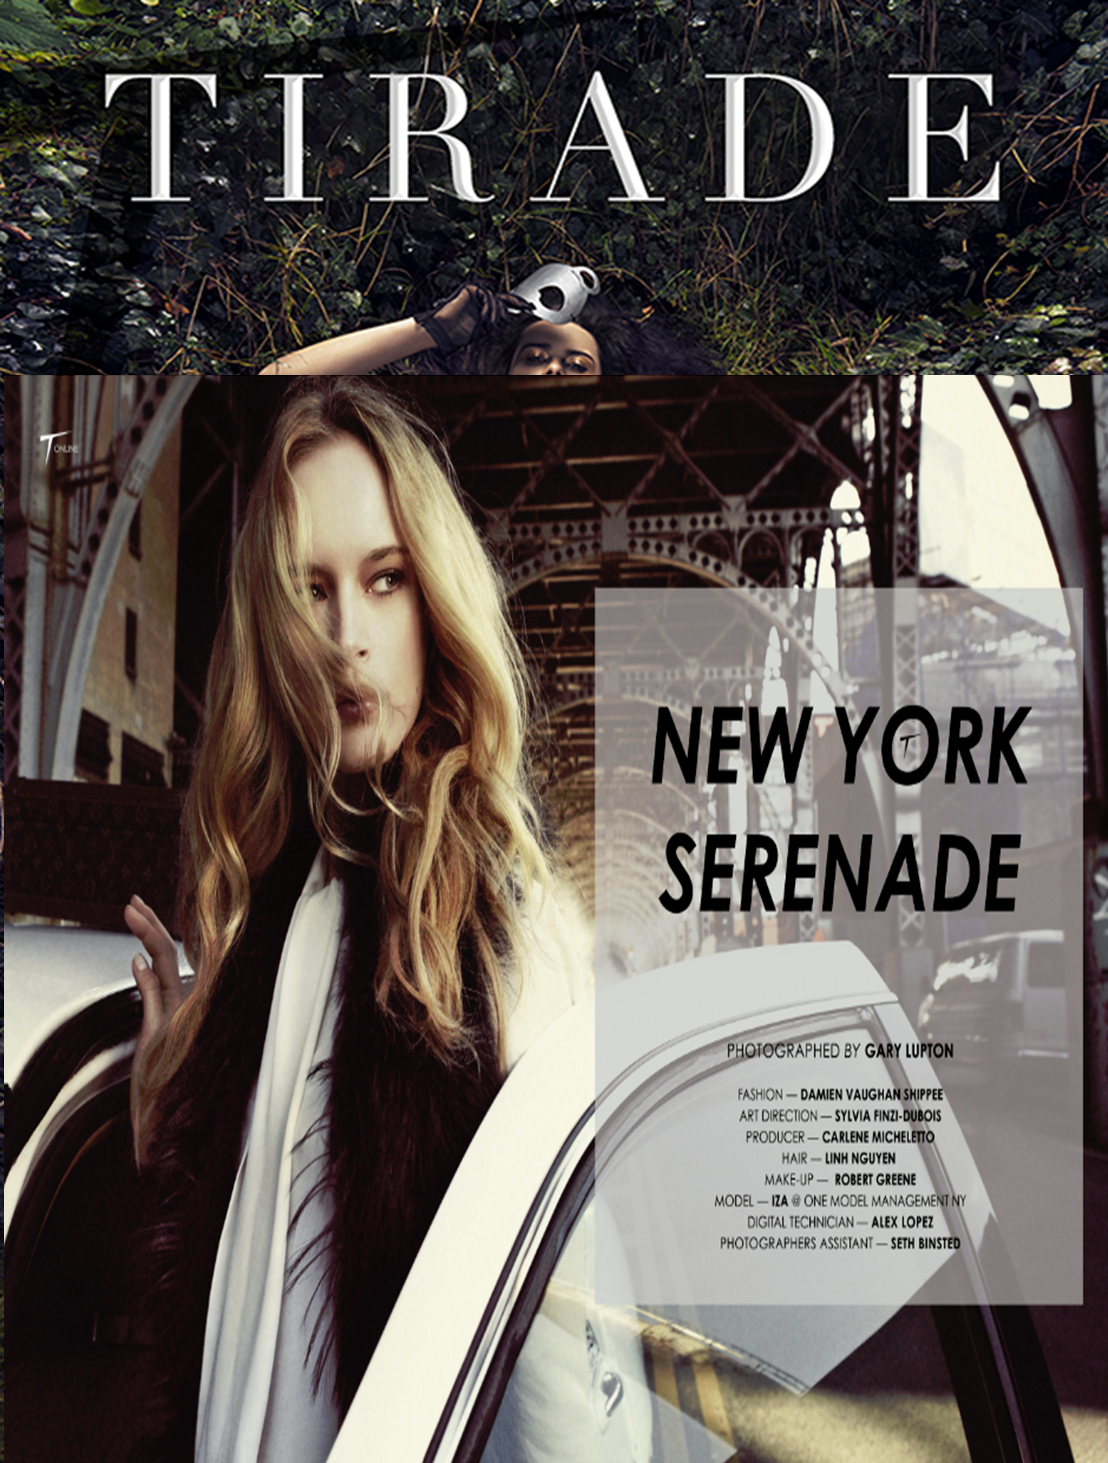 Tirade Magzine Captures New York via Phoenix Keating and LXR & Co